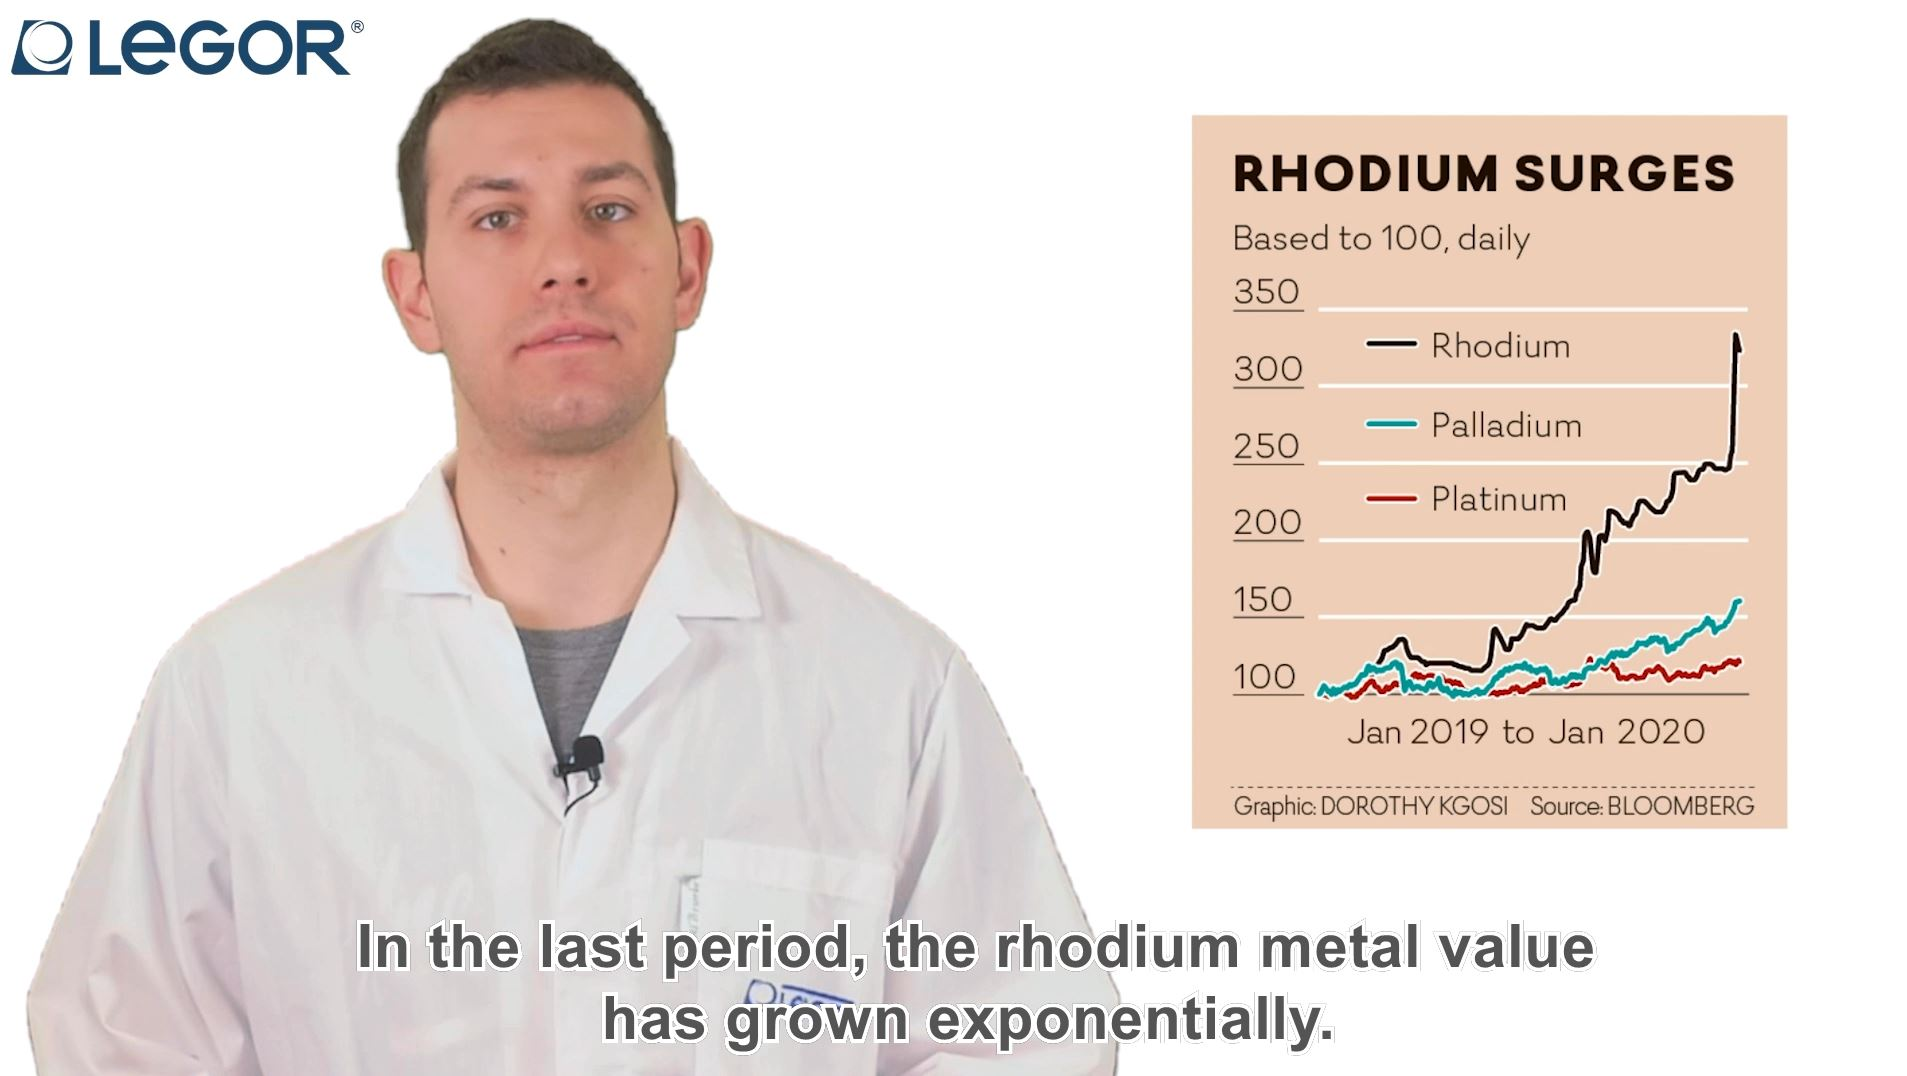 How to face the increase in rhodium metal value?